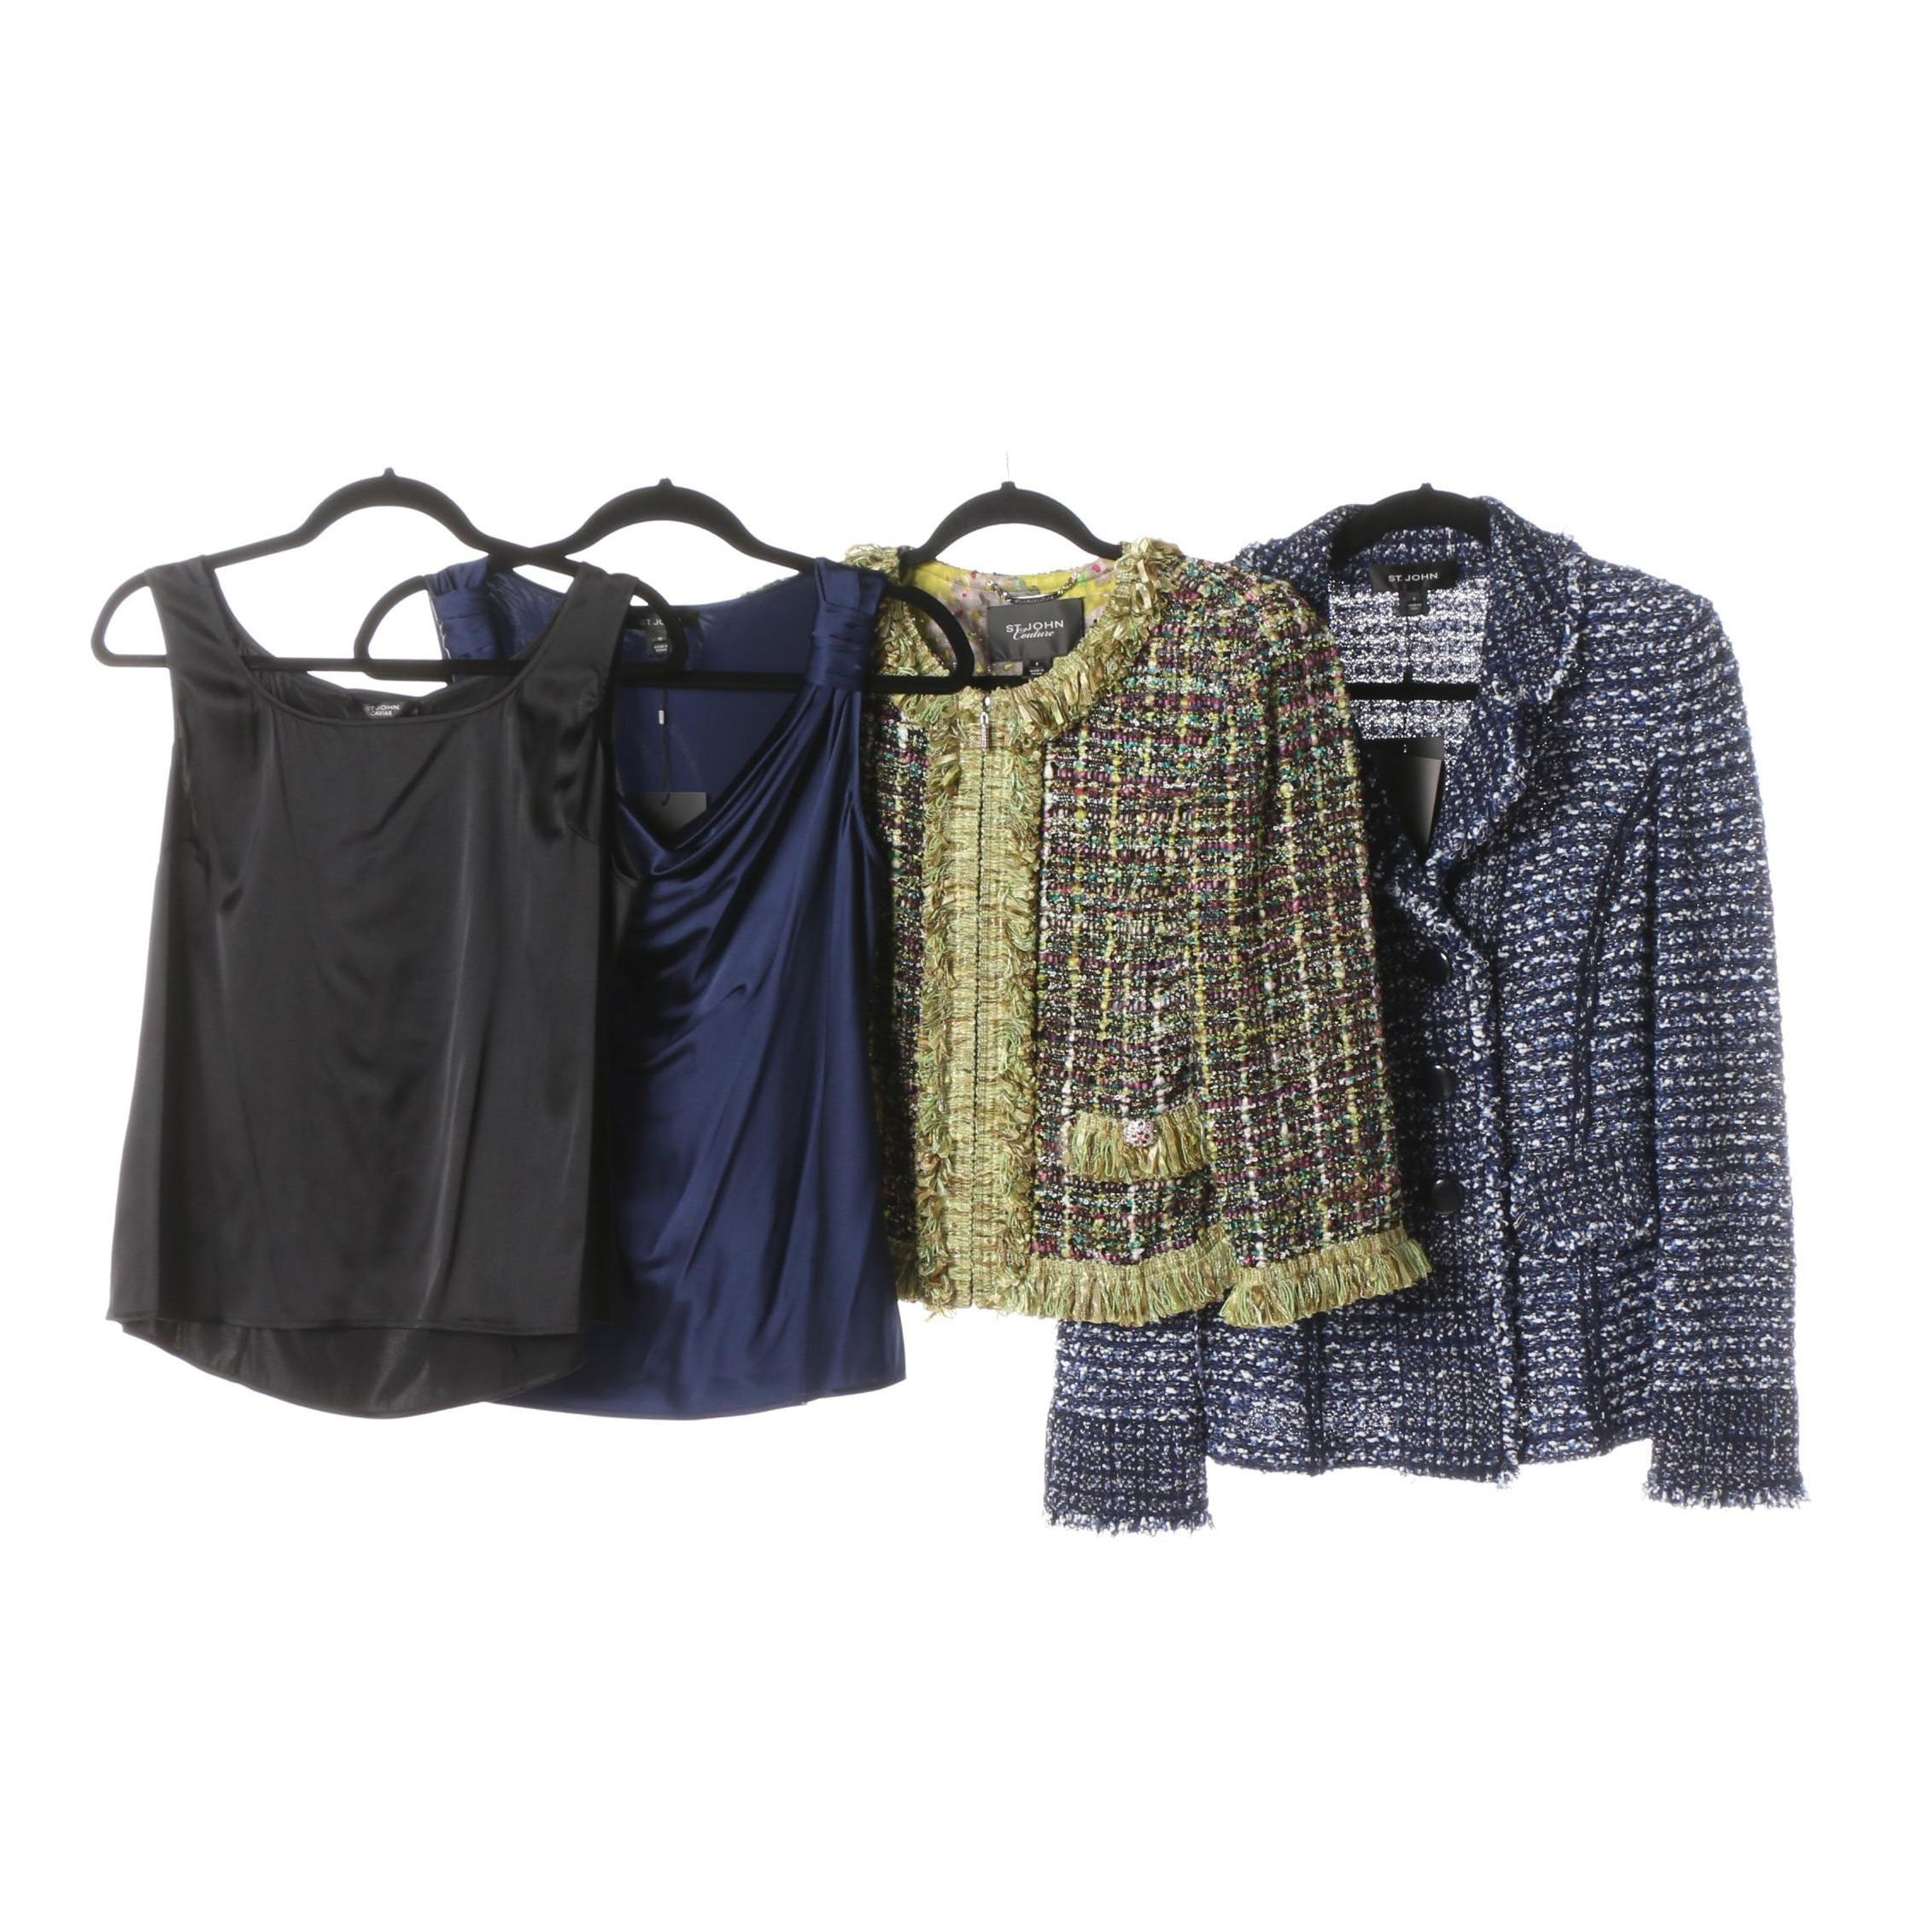 Women's St. John Brand Jackets and Tops Including St. John Couture and Caviar